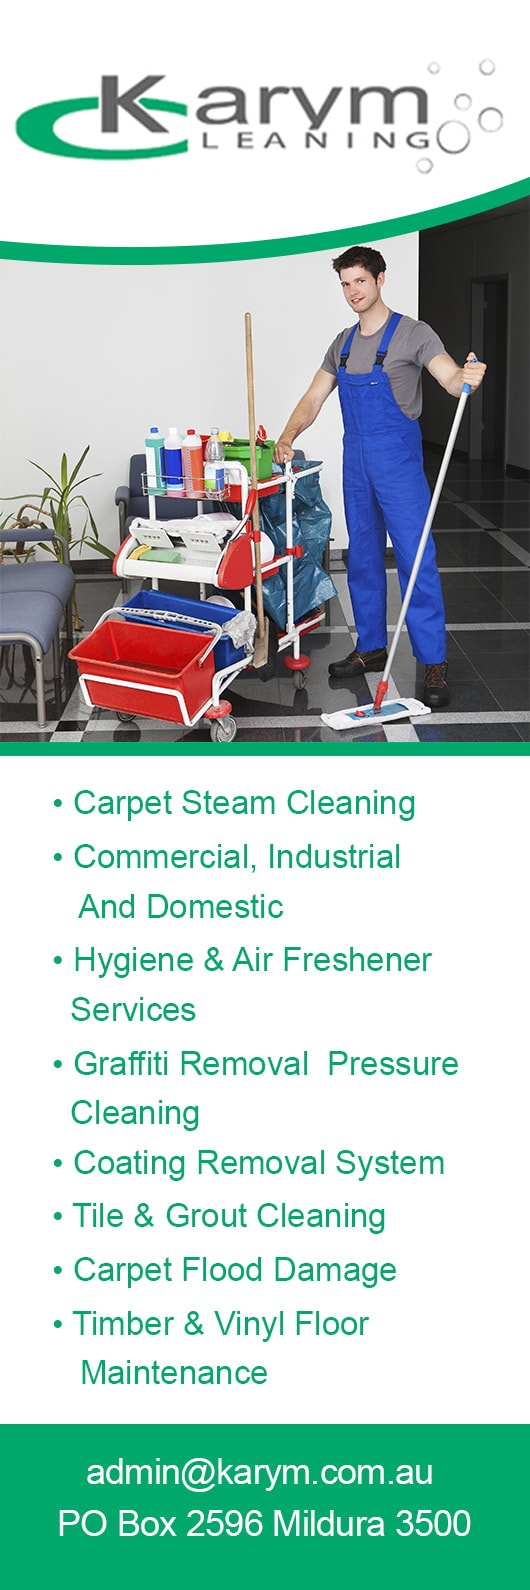 Karym Cleaning Commercial Industrial Cleaning Services Mildura